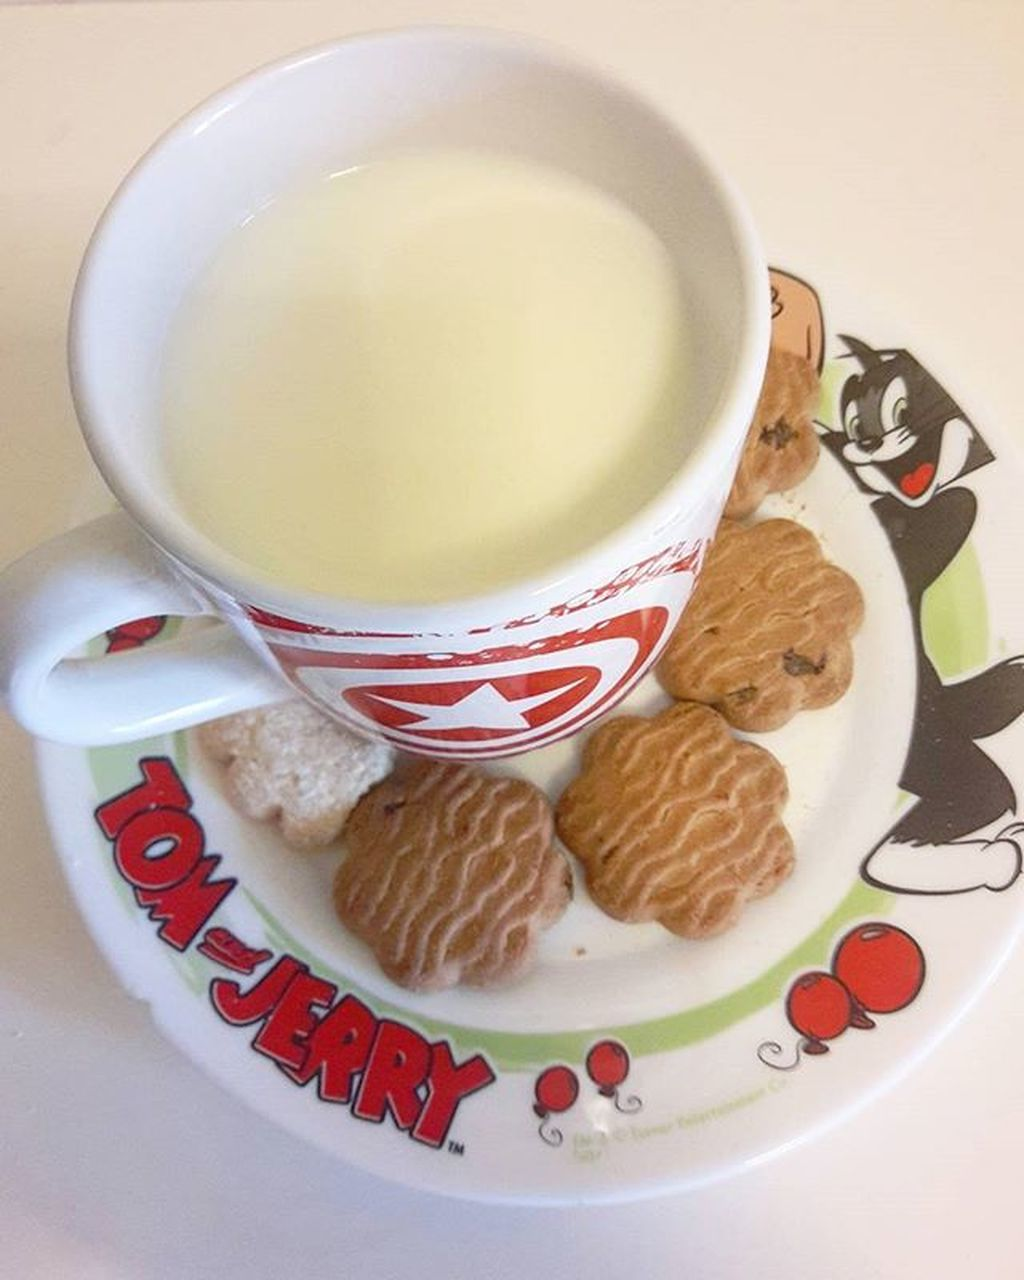 food and drink, drink, cup, tea - hot drink, coffee cup, refreshment, plate, food, no people, freshness, saucer, coffee - drink, indoors, cookie, table, serving size, healthy eating, milk, ready-to-eat, close-up, sweet food, day